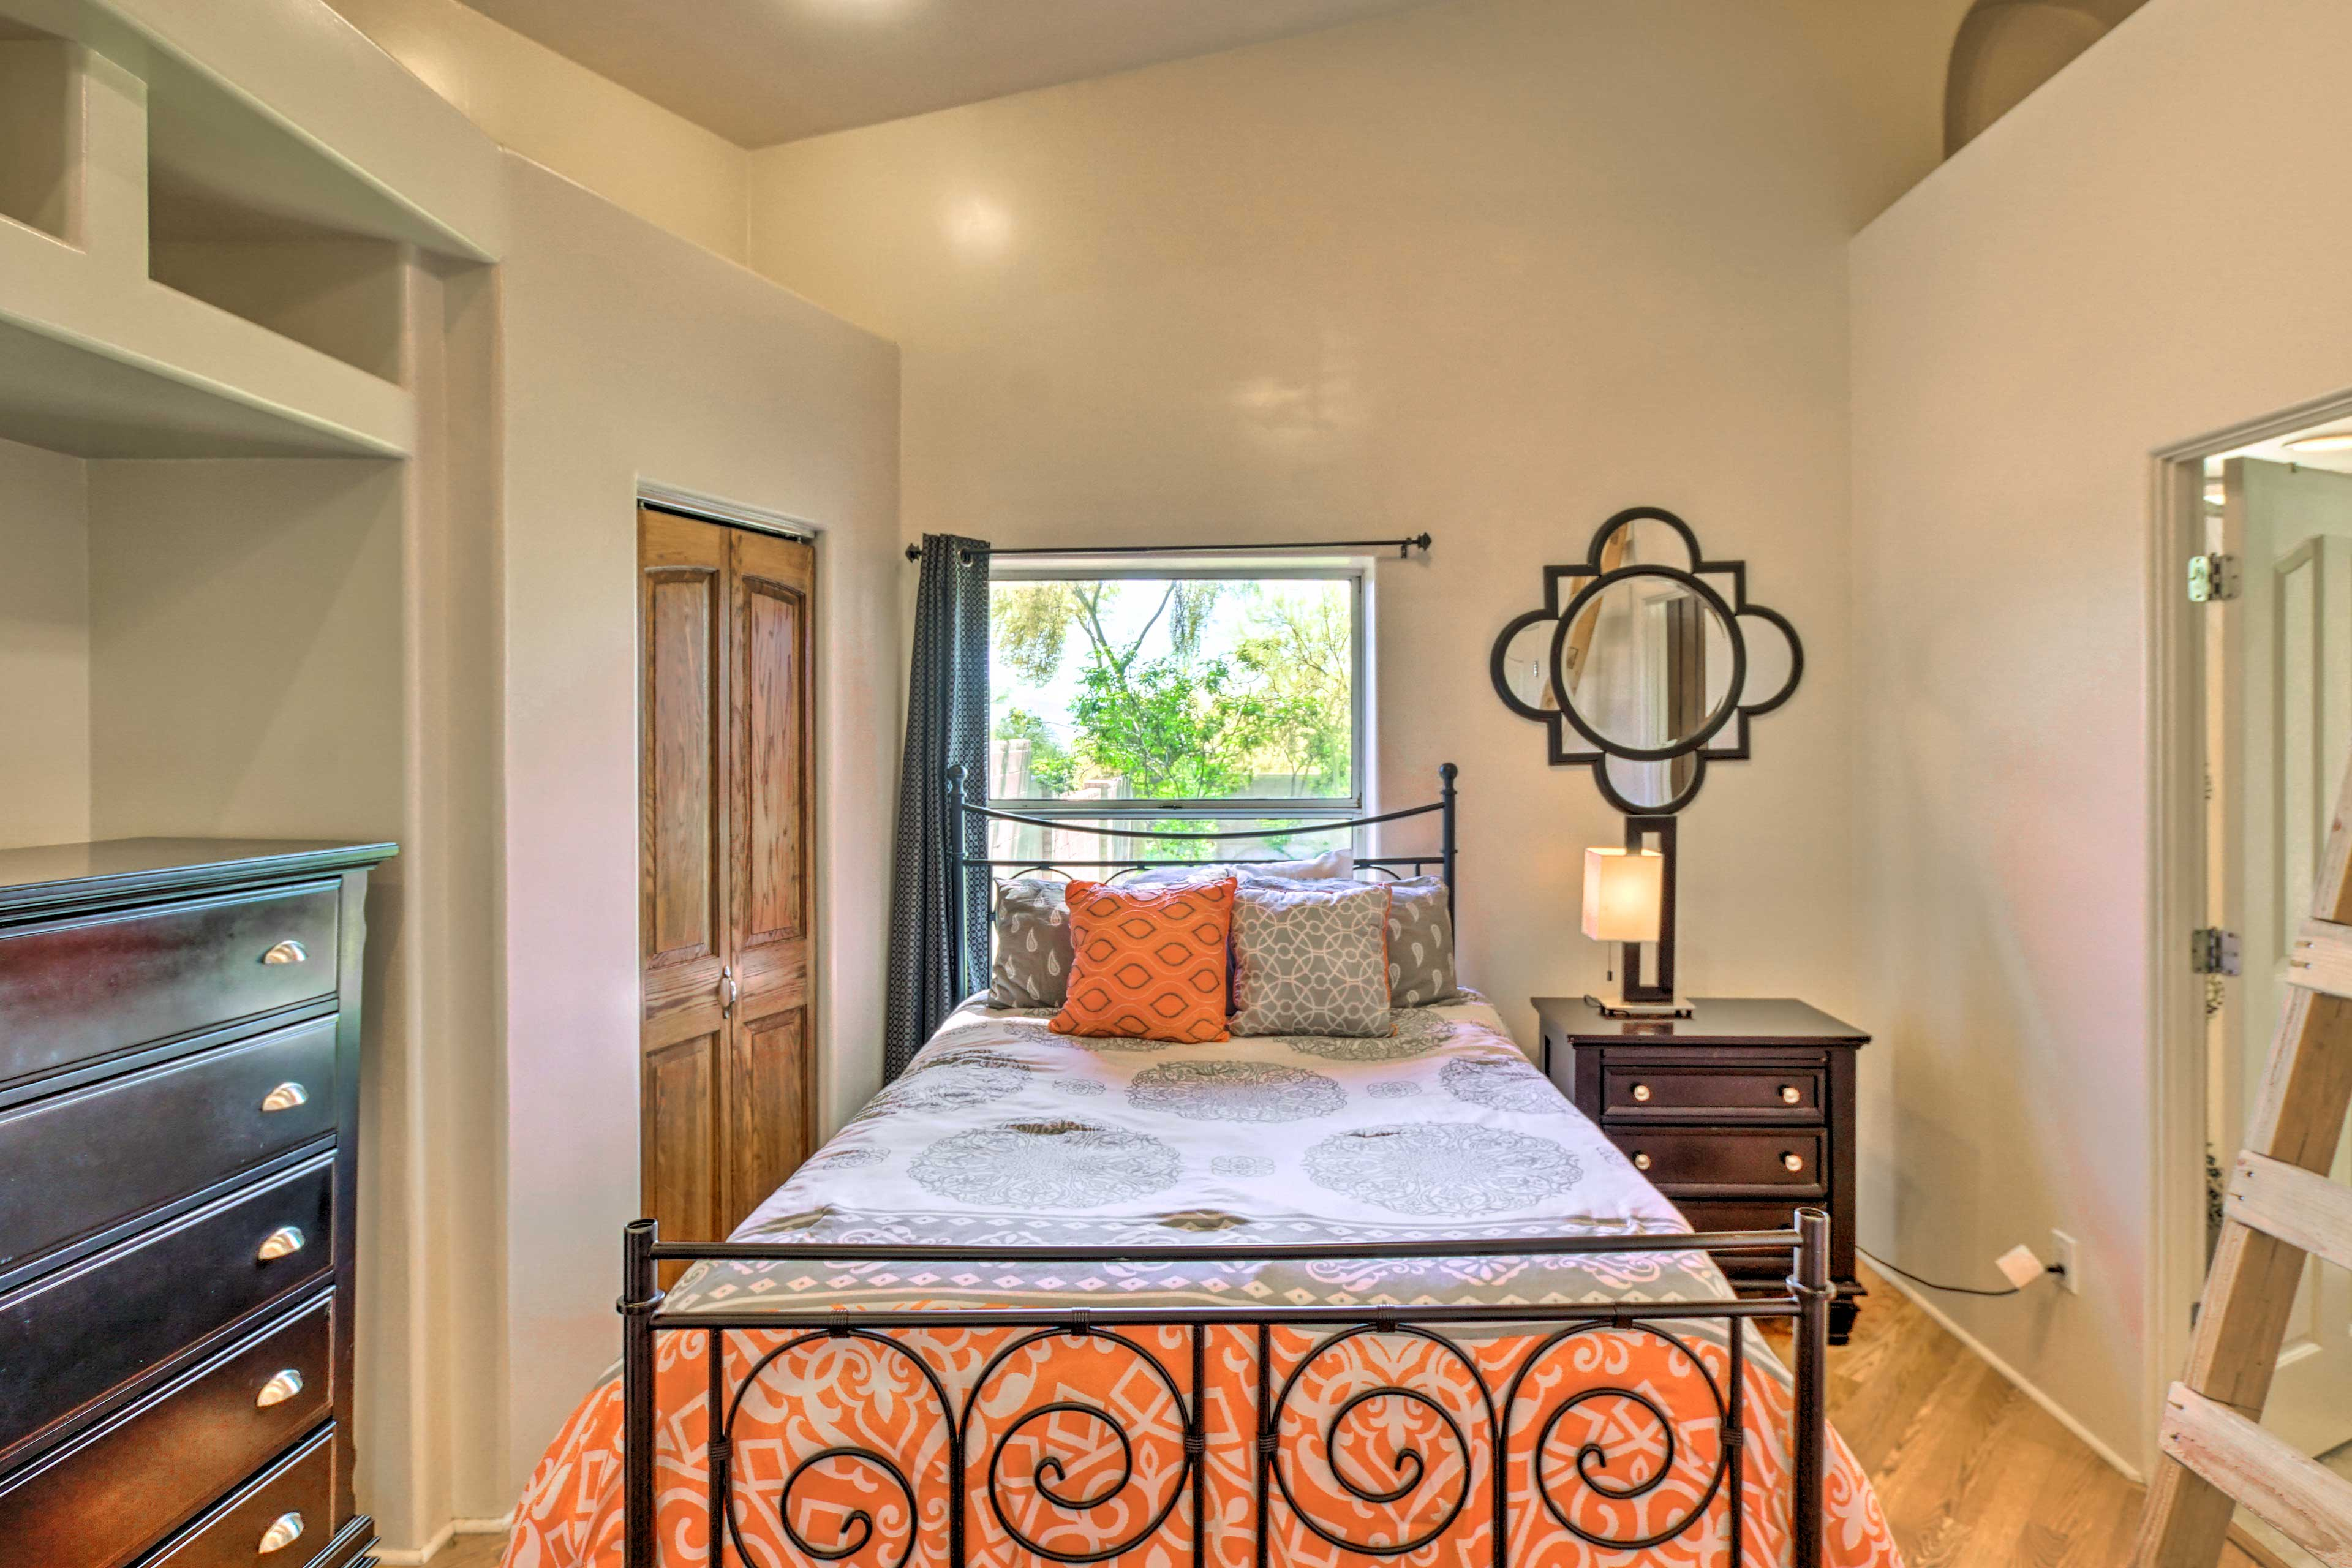 Sink into this full bed for a peaceful night of rest.